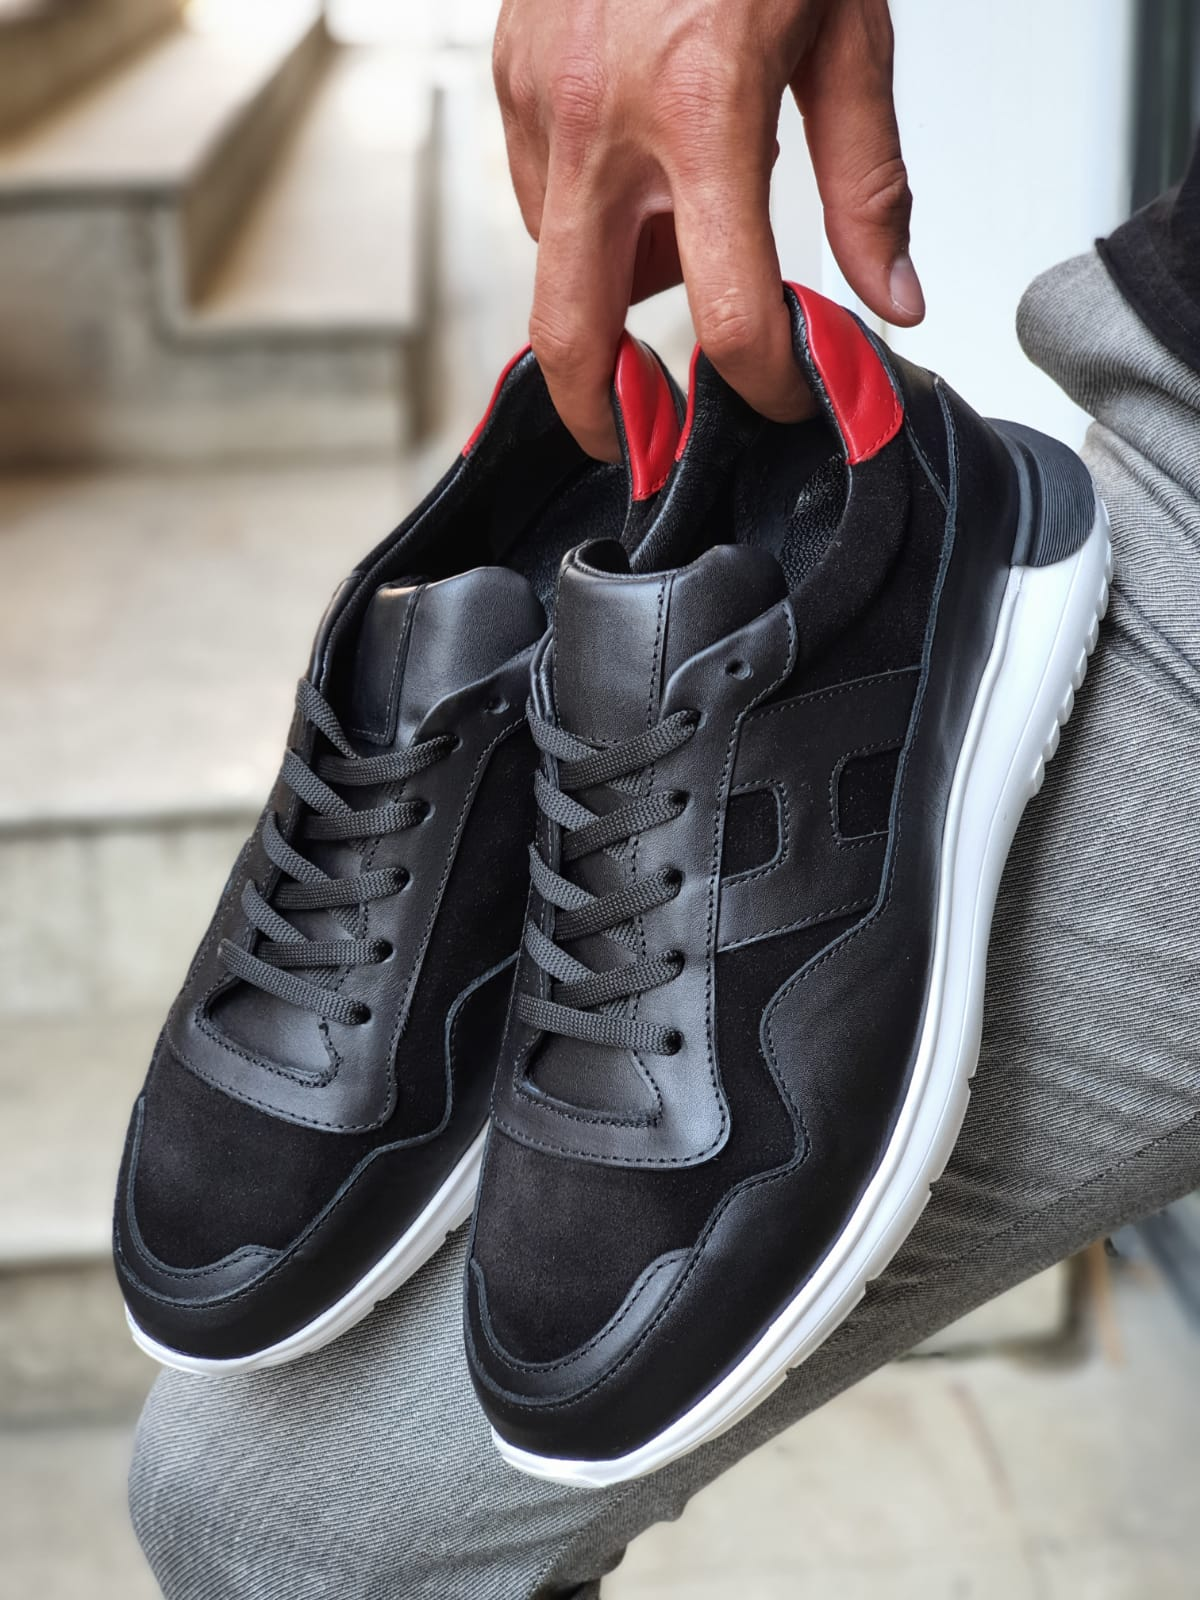 Aysoti lack Mid-Top Sneakers